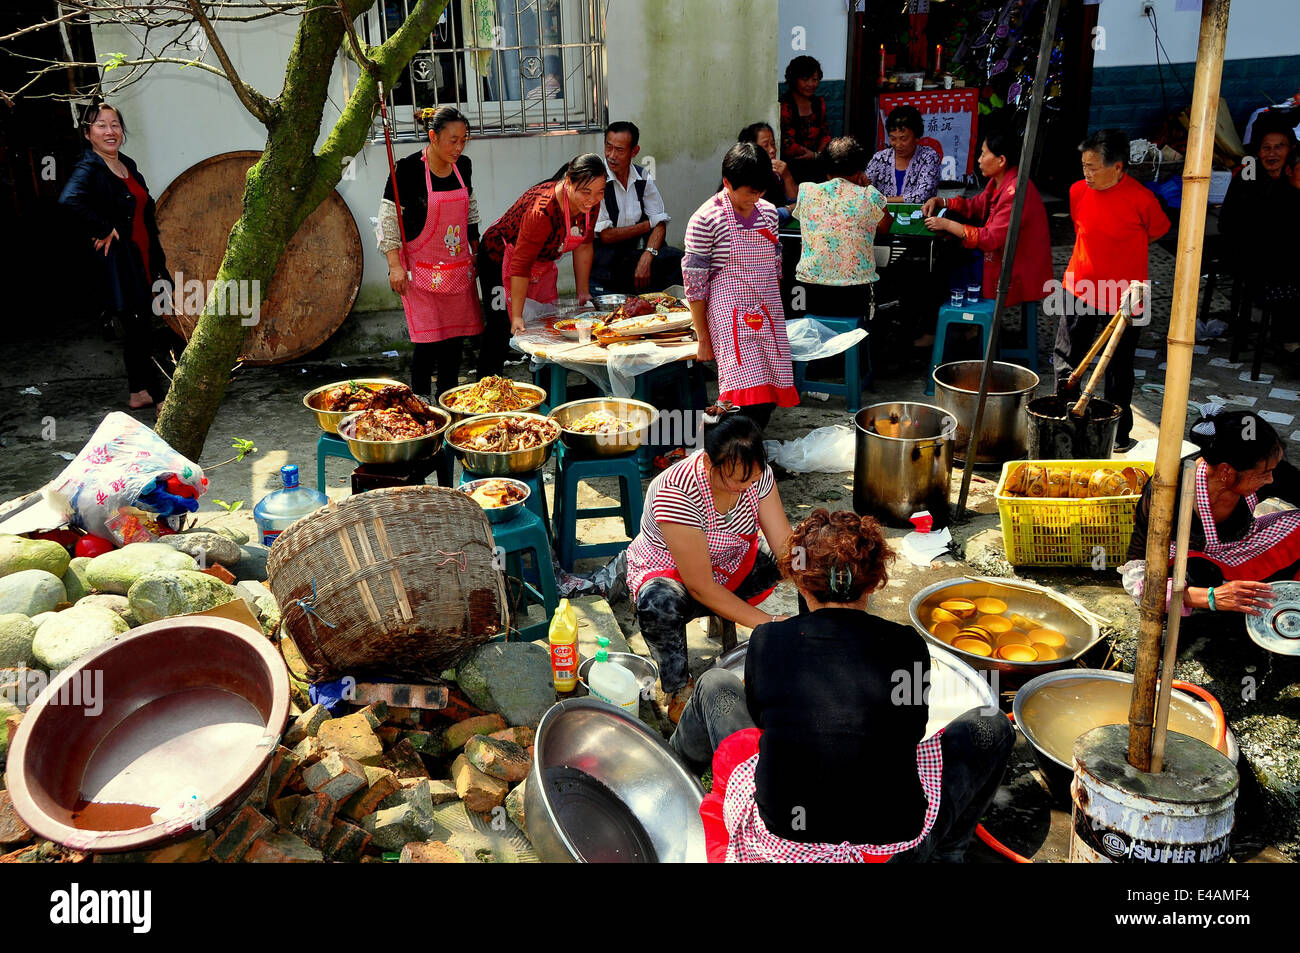 PENGZHOU, CHINA: A large gathering of people with copious amounts of food for an outdoor wedding luncheon Stock Photo